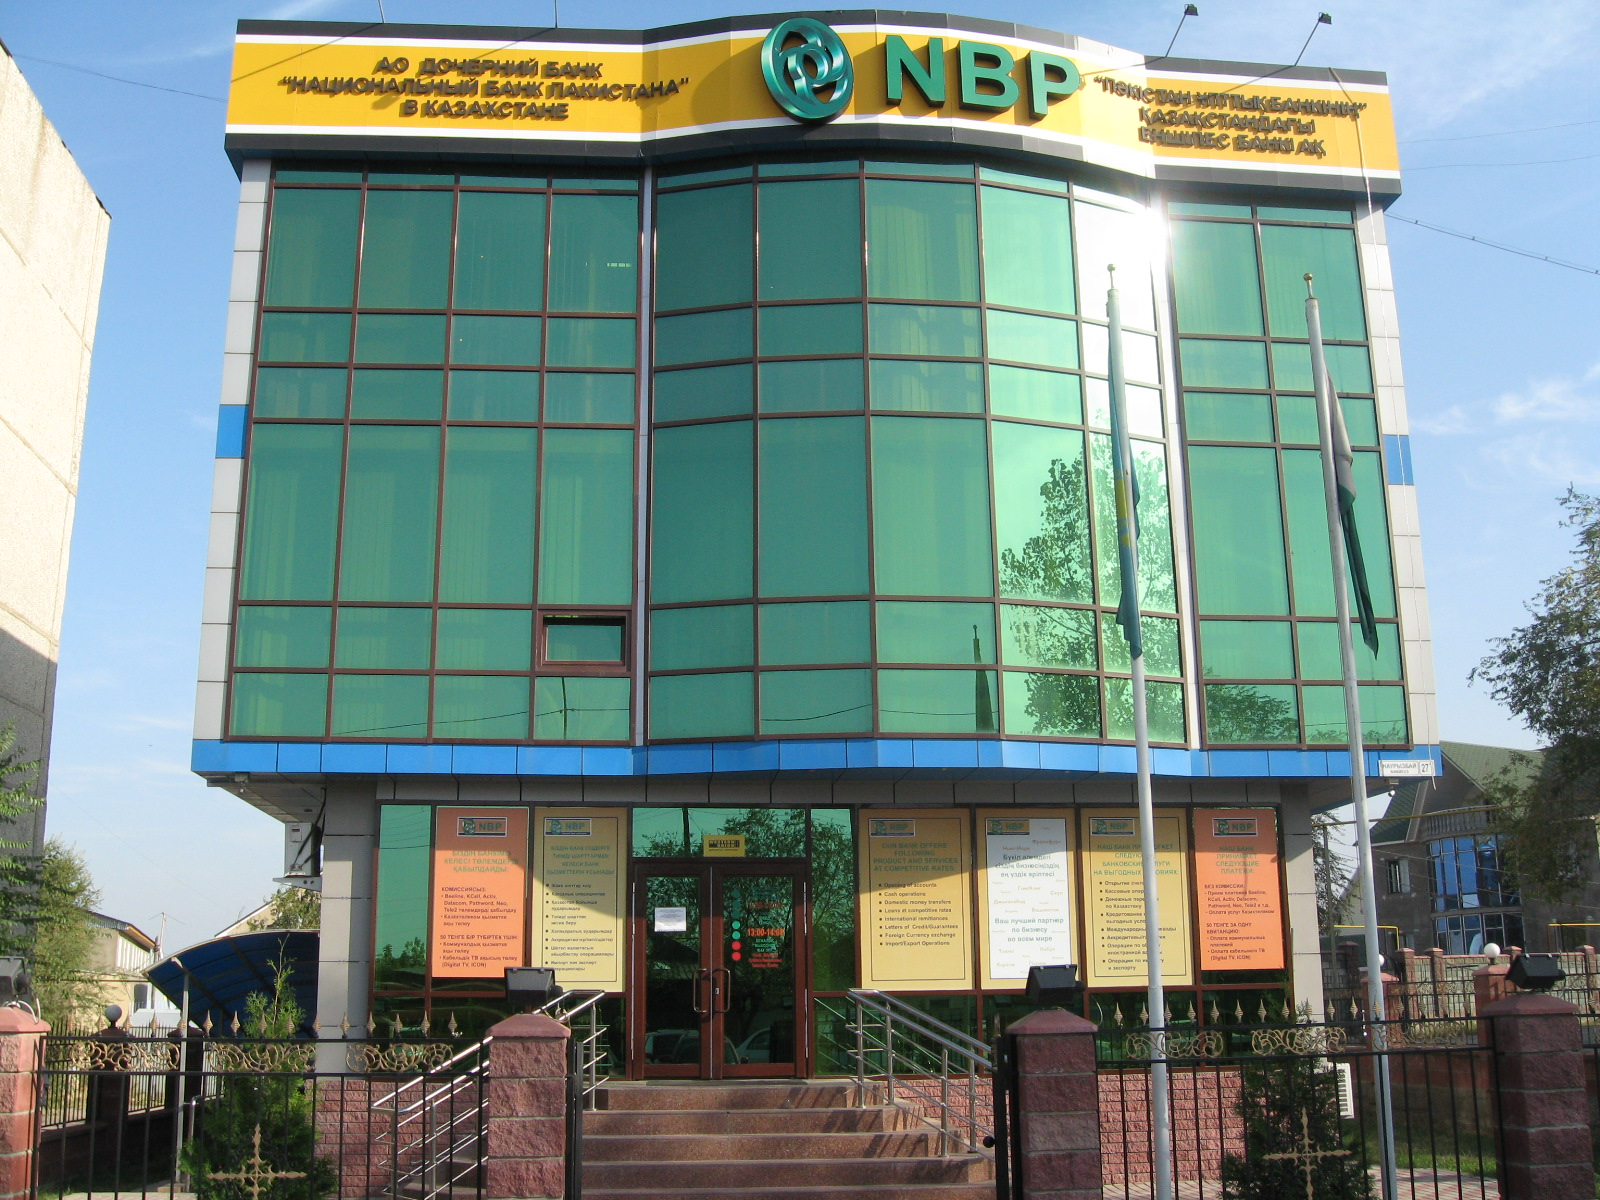 National bank of pakistan eyes setting up a branch in china - National bank of pakistan head office ...